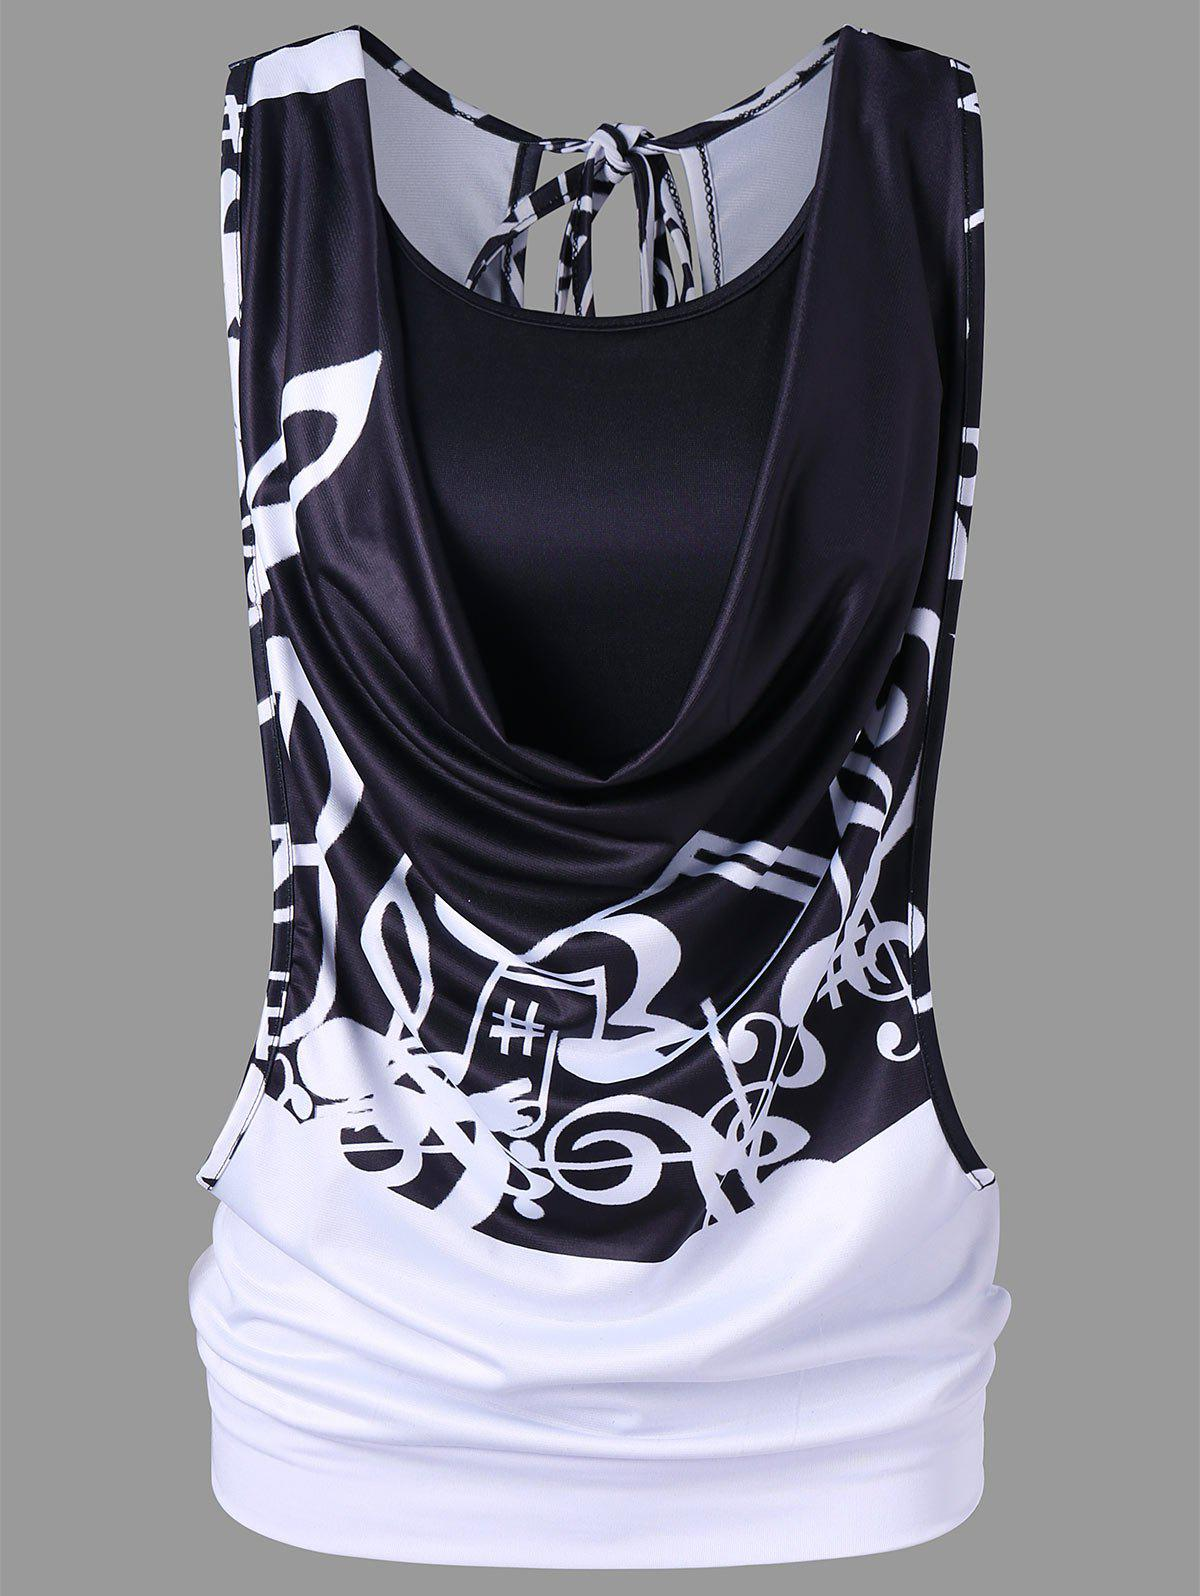 Cheap Music Note Cut out Tank Top with Camisole